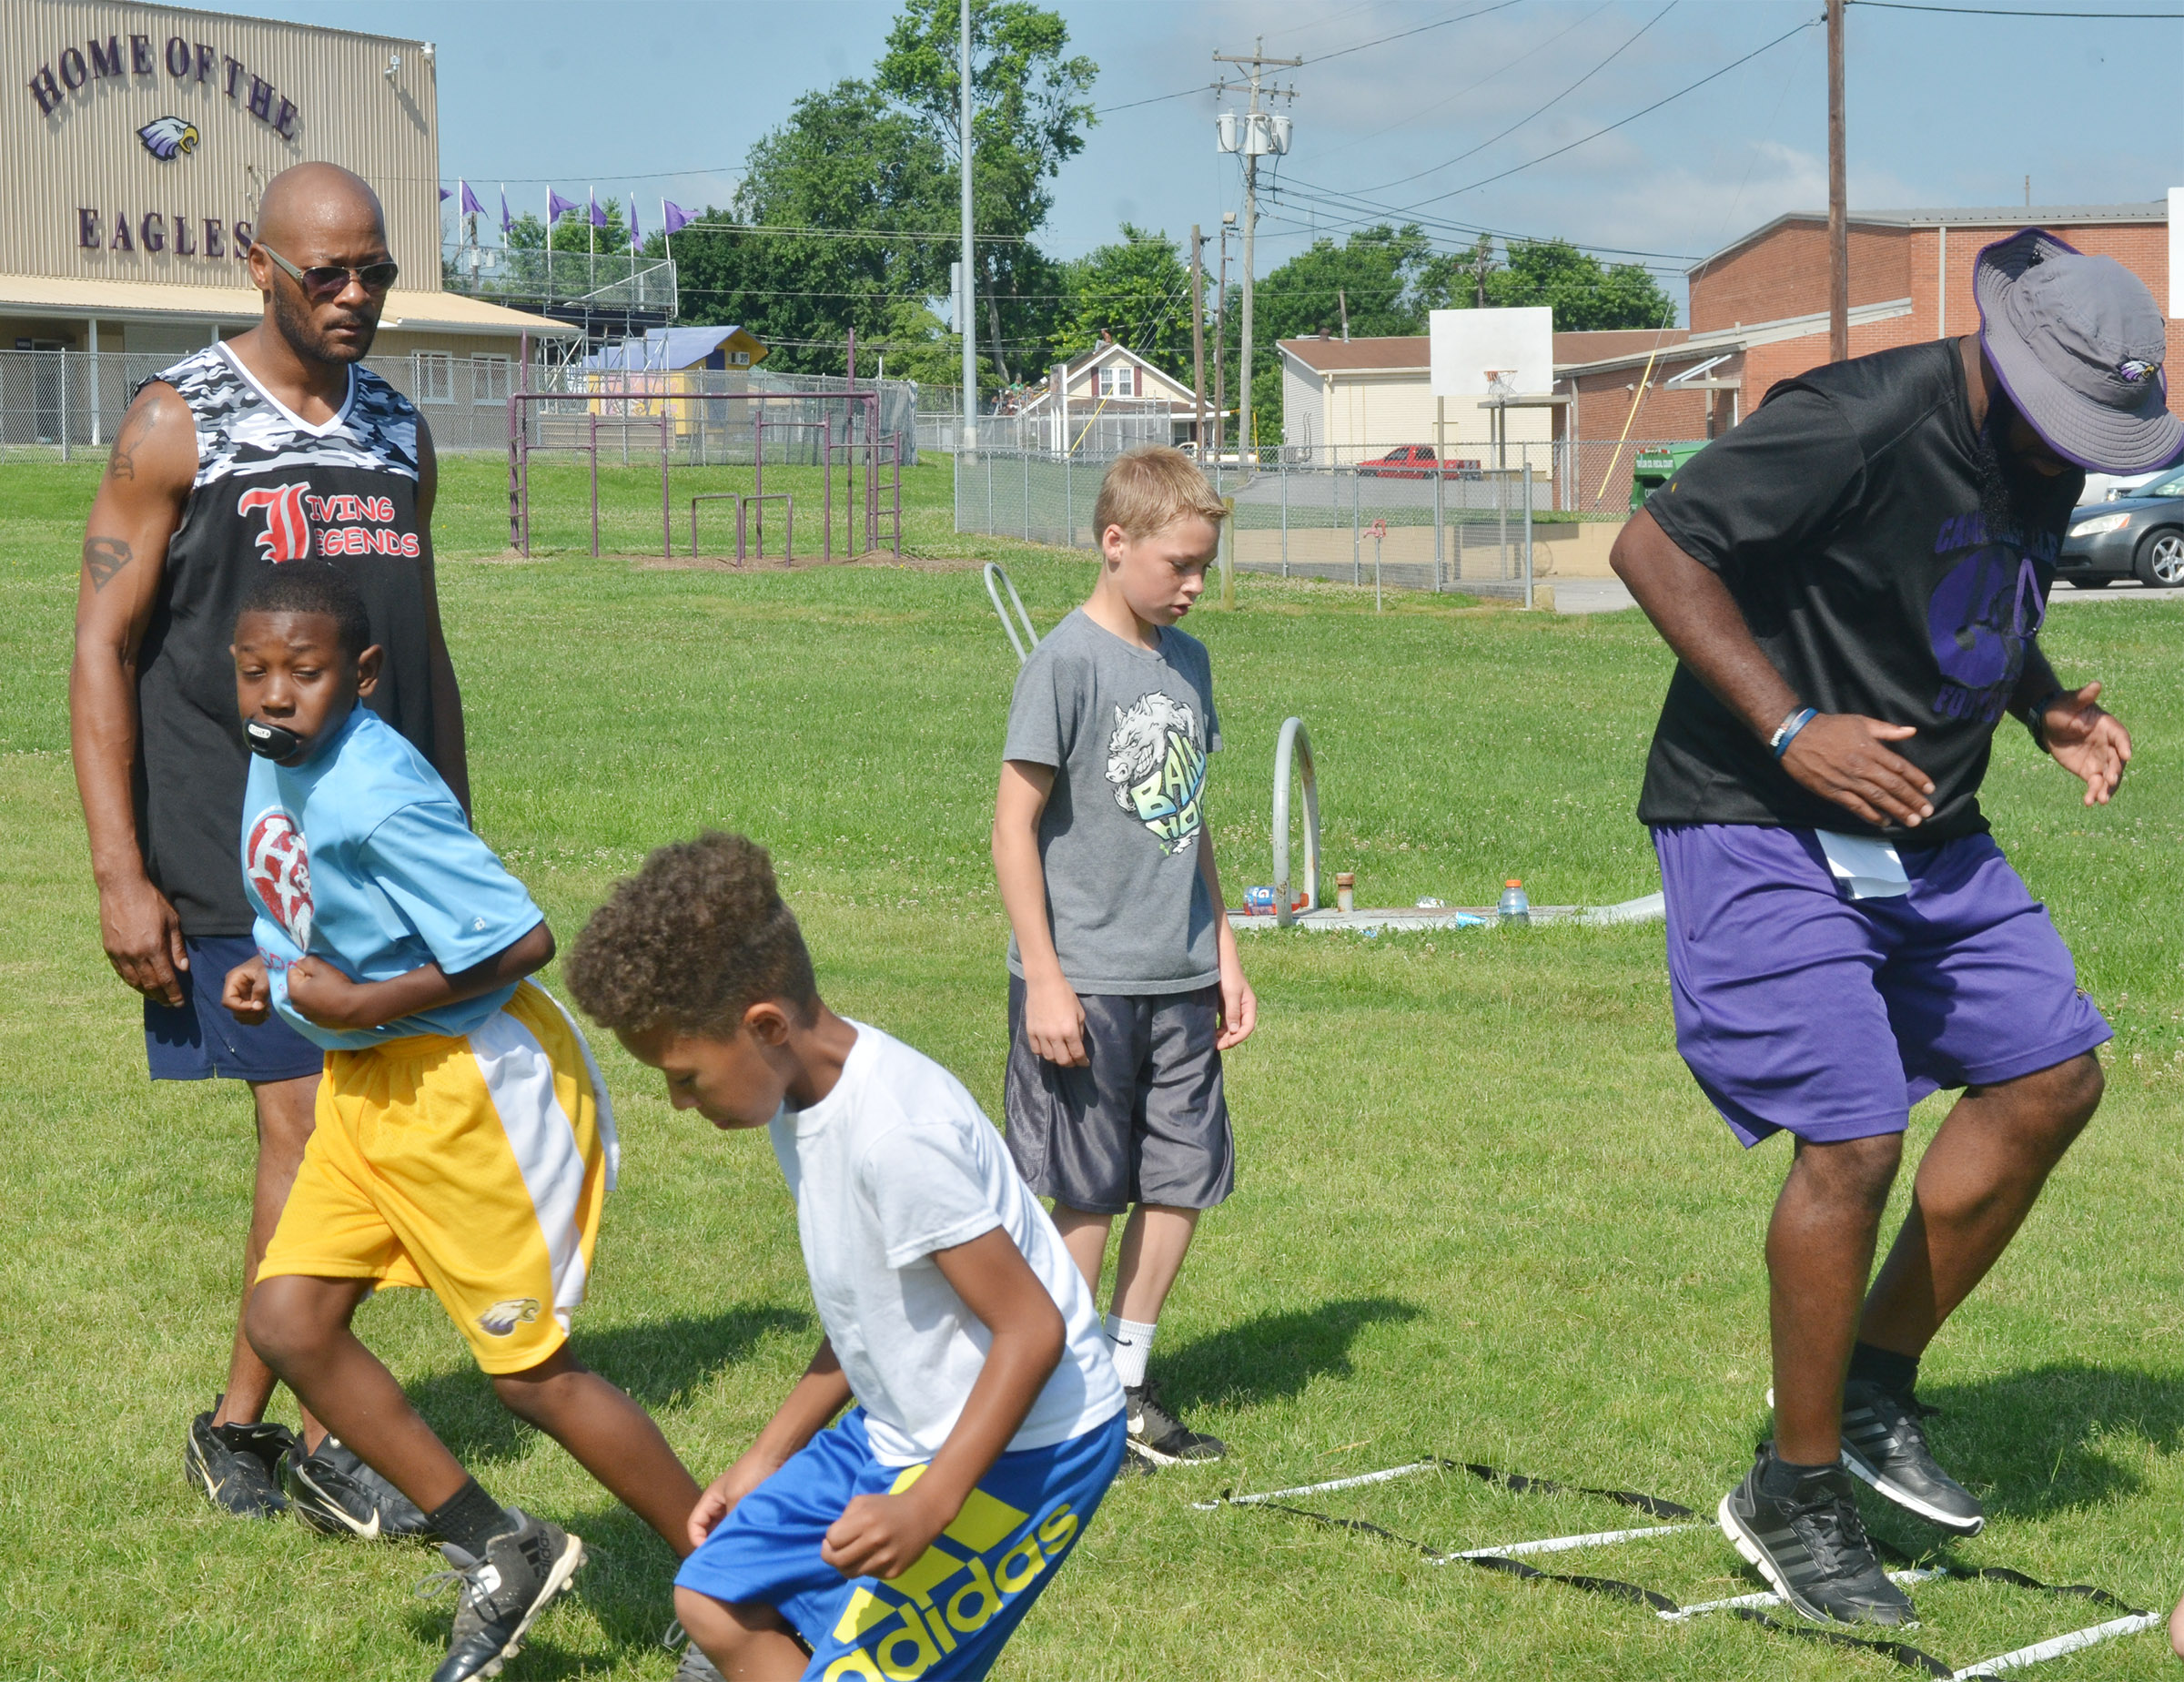 Former NFL player Tony Driver helps campers work on their footwork.